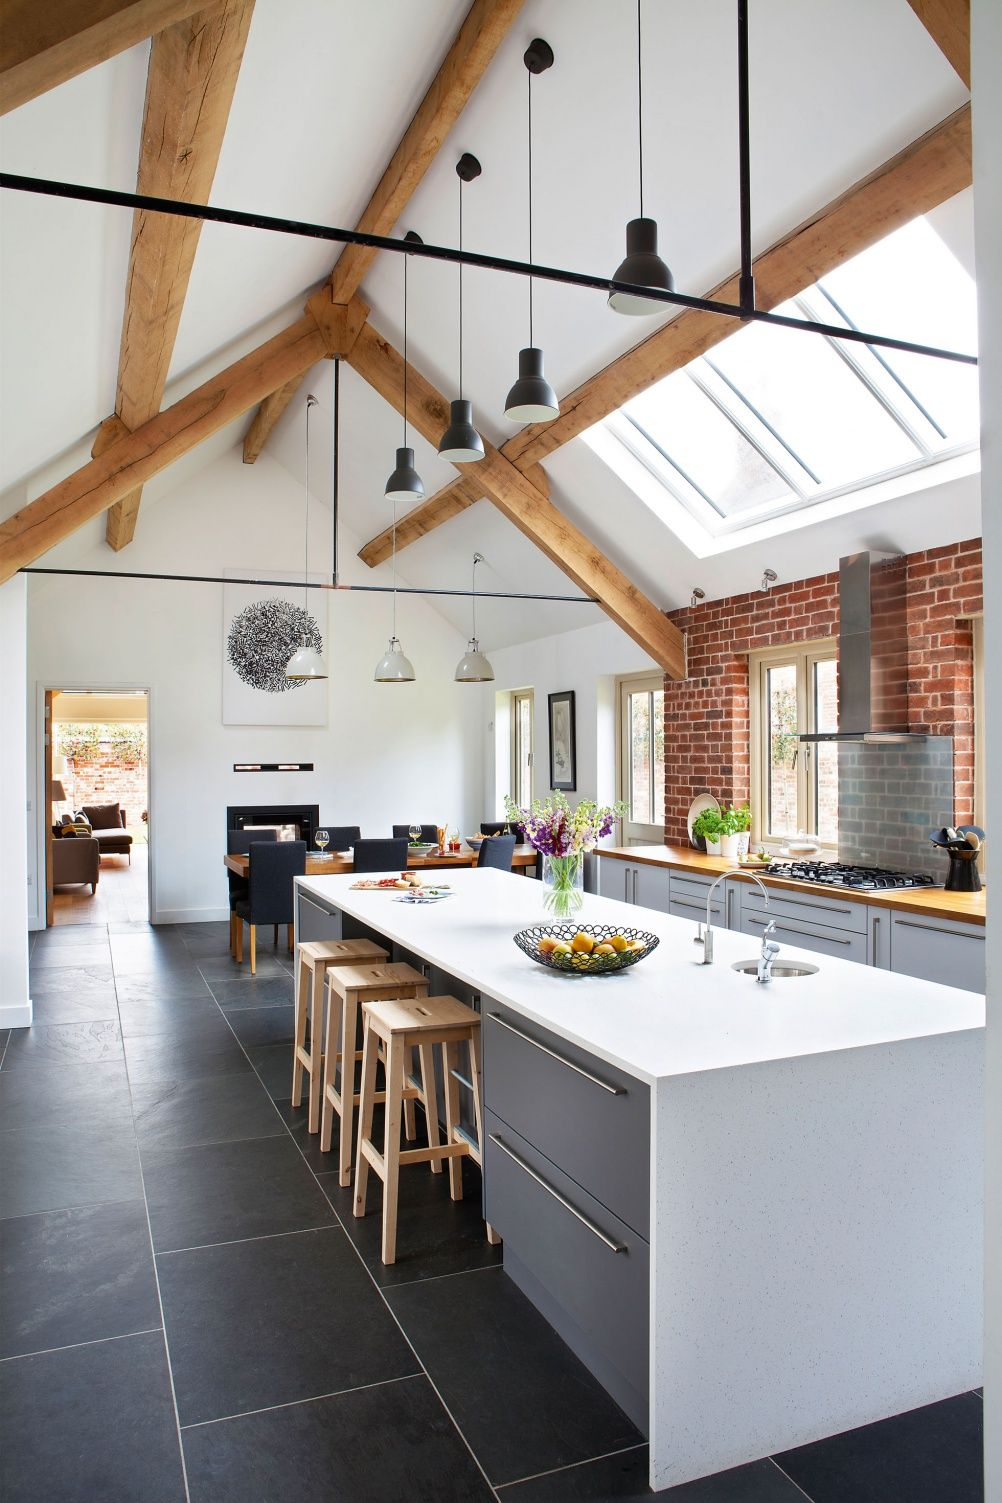 Real Home A Two Storey Barn Conversion Barn Kitchen Barn Conversion Interiors Barn Conversion Kitchen